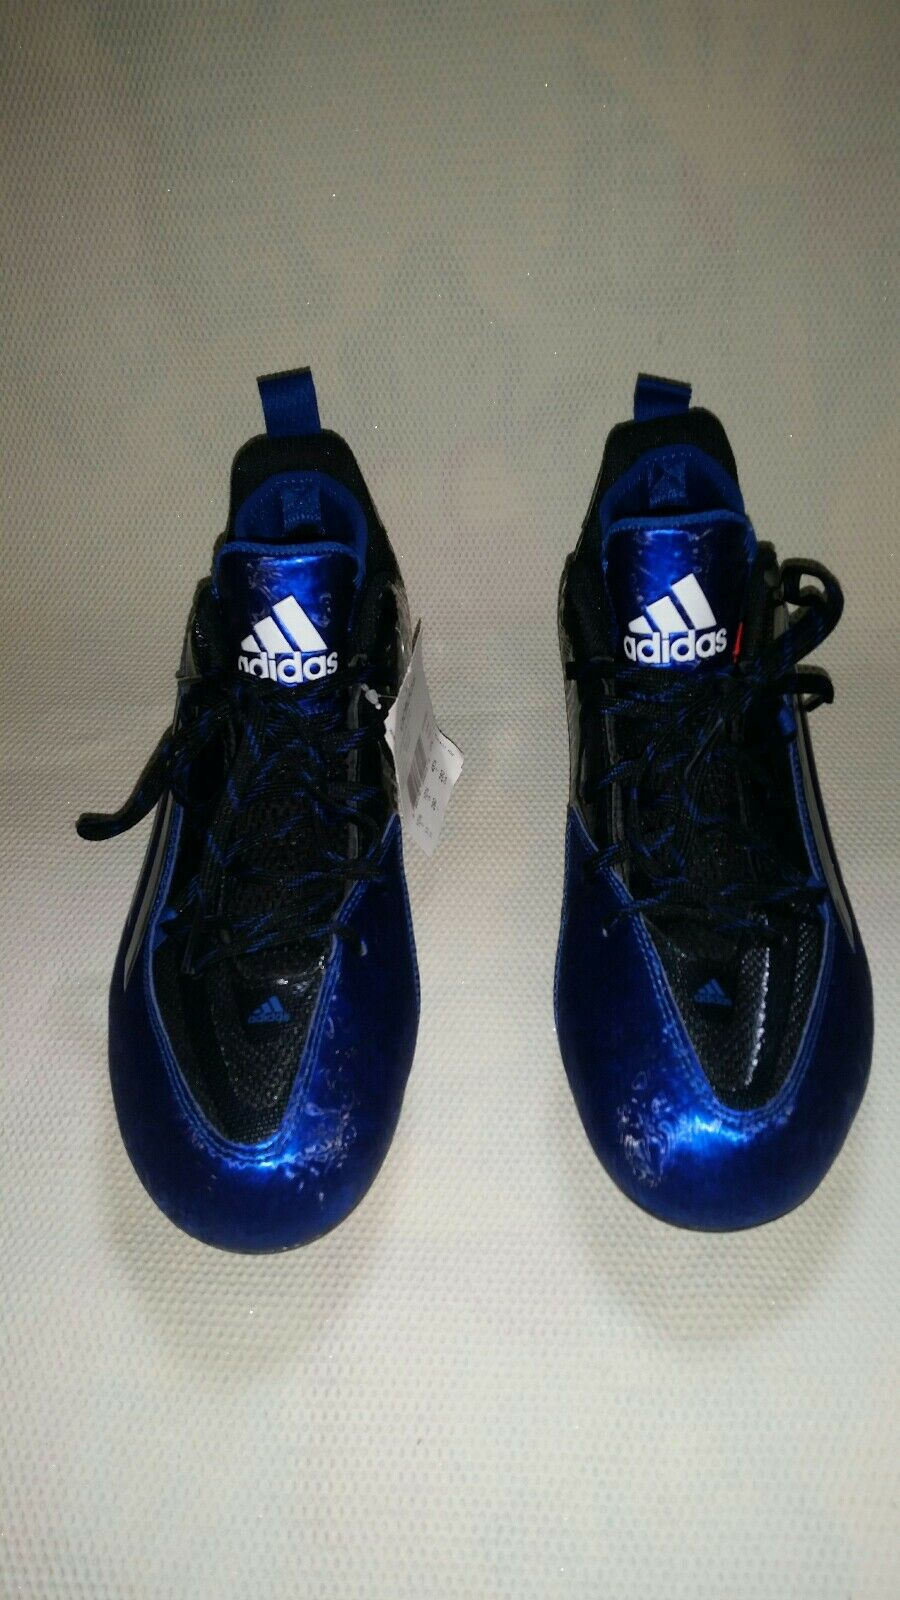 Adidas S83669 adidas Mens Crazyquick 2.0  Cleats size 11, soccer cleats. Seasonal clearance sale